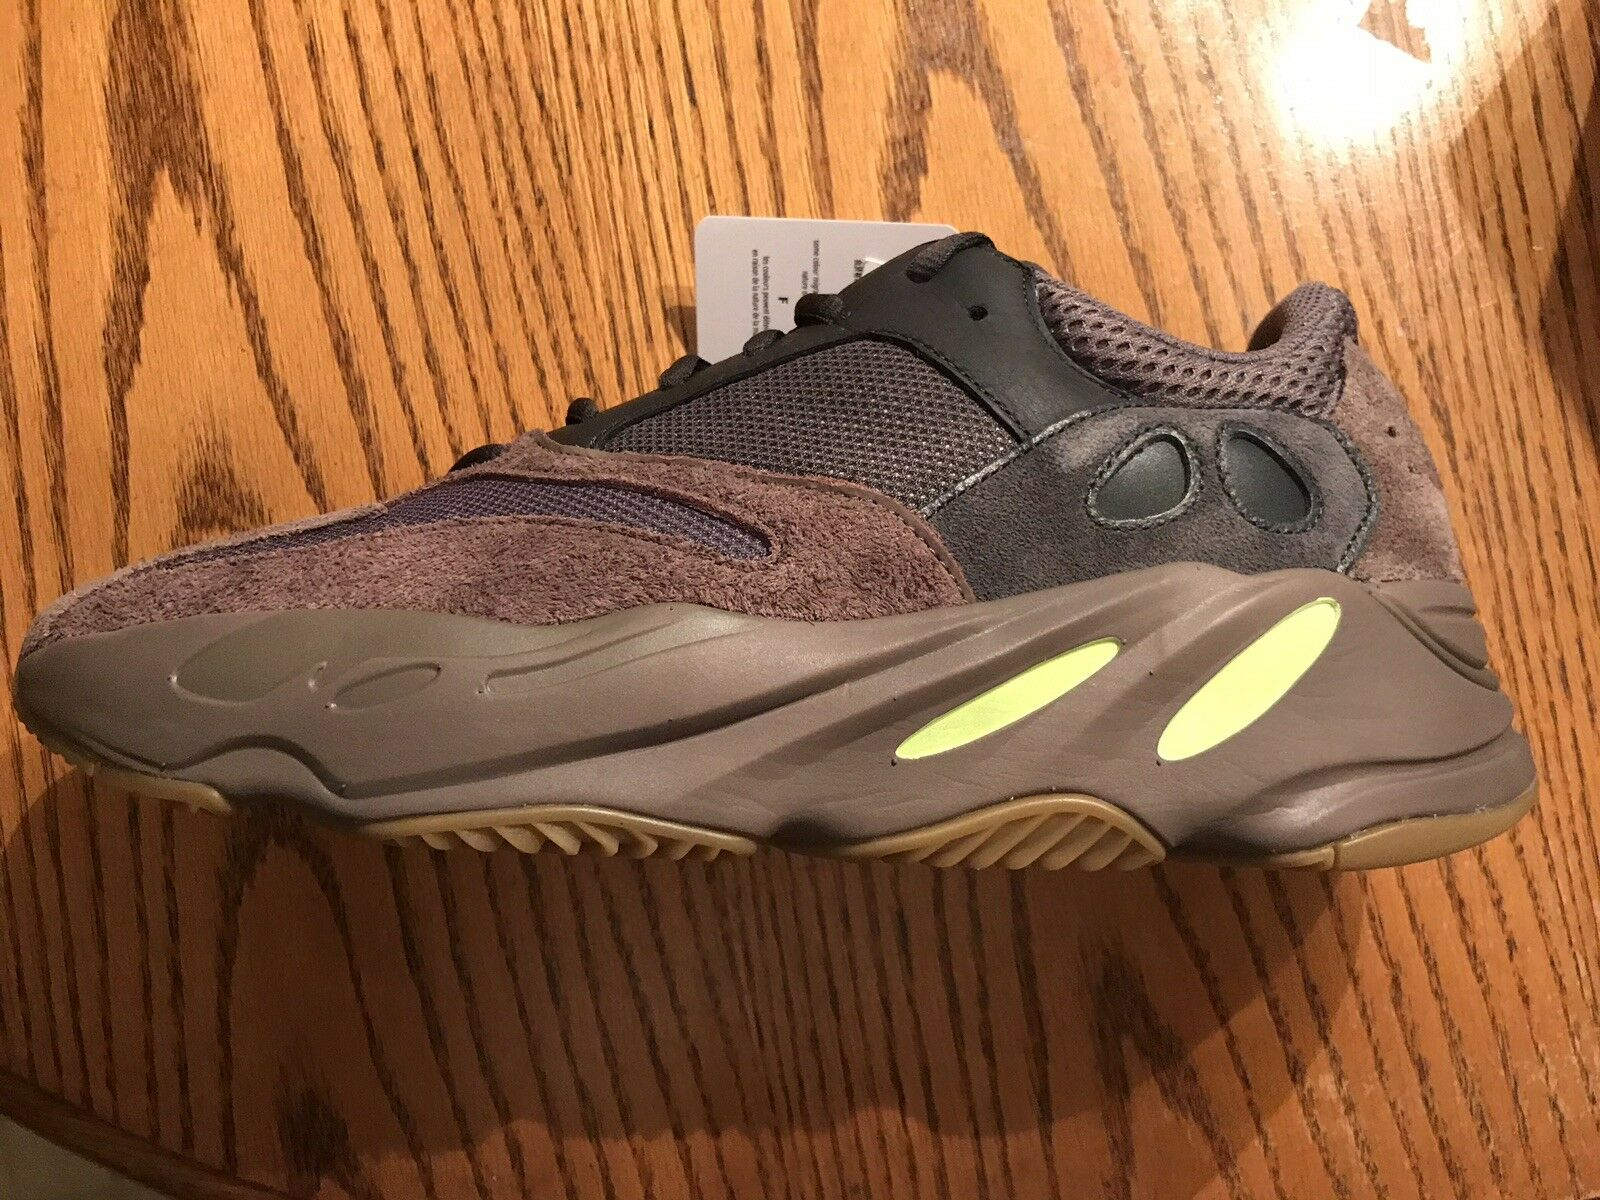 f4424e80d Yeezy Boost 700 Sneaker Adidas Muave nhpwuu3972-Athletic Shoes ...